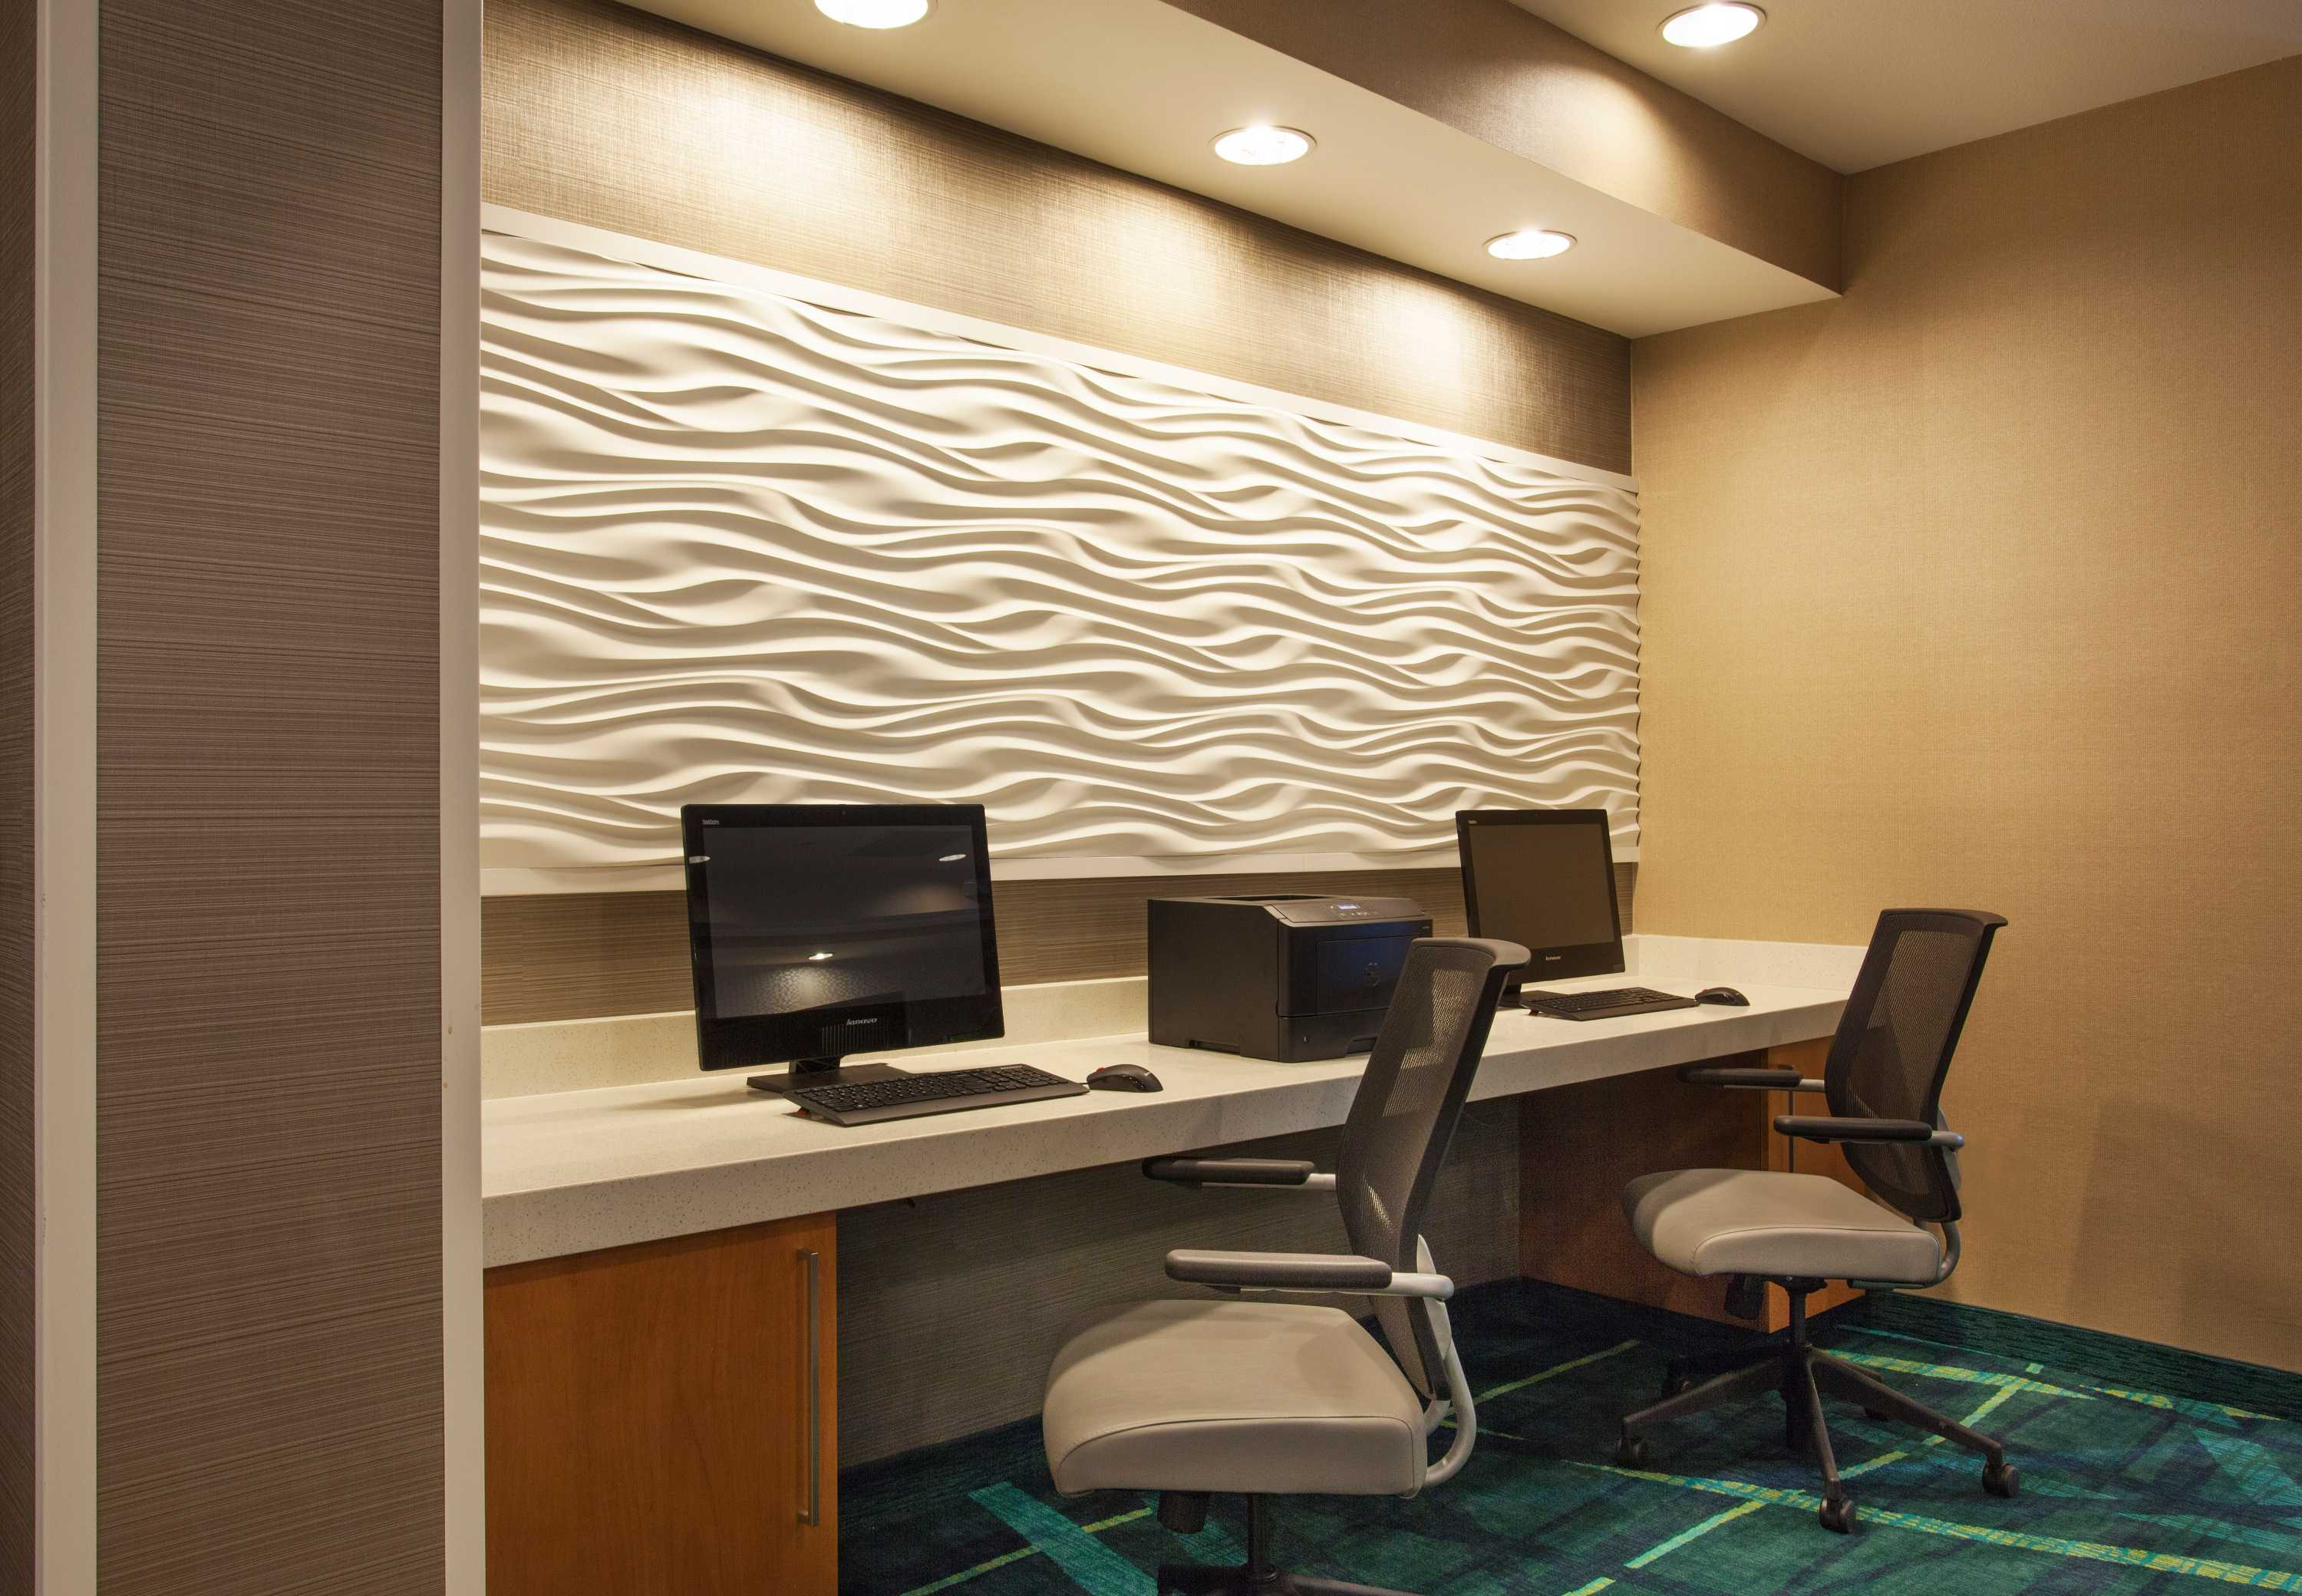 SpringHill Suites by Marriott Phoenix Tempe/Airport image 13